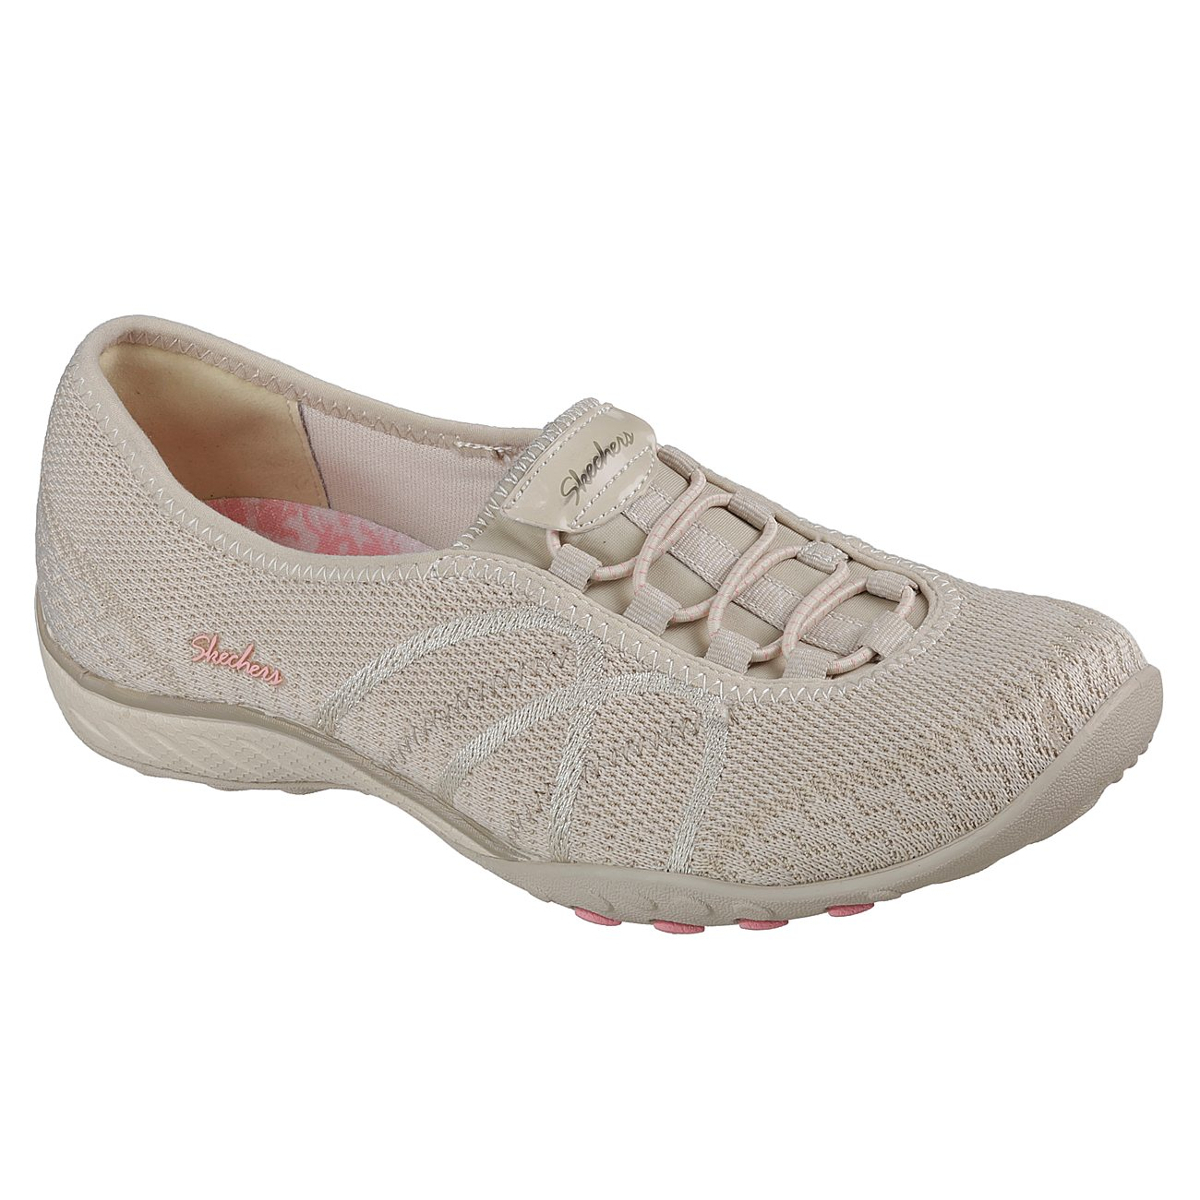 Skechers Women's Relaxed Fit: Breathe Easy - Sweet Jam Casual Slip-On Shoes - Brown, 9.5